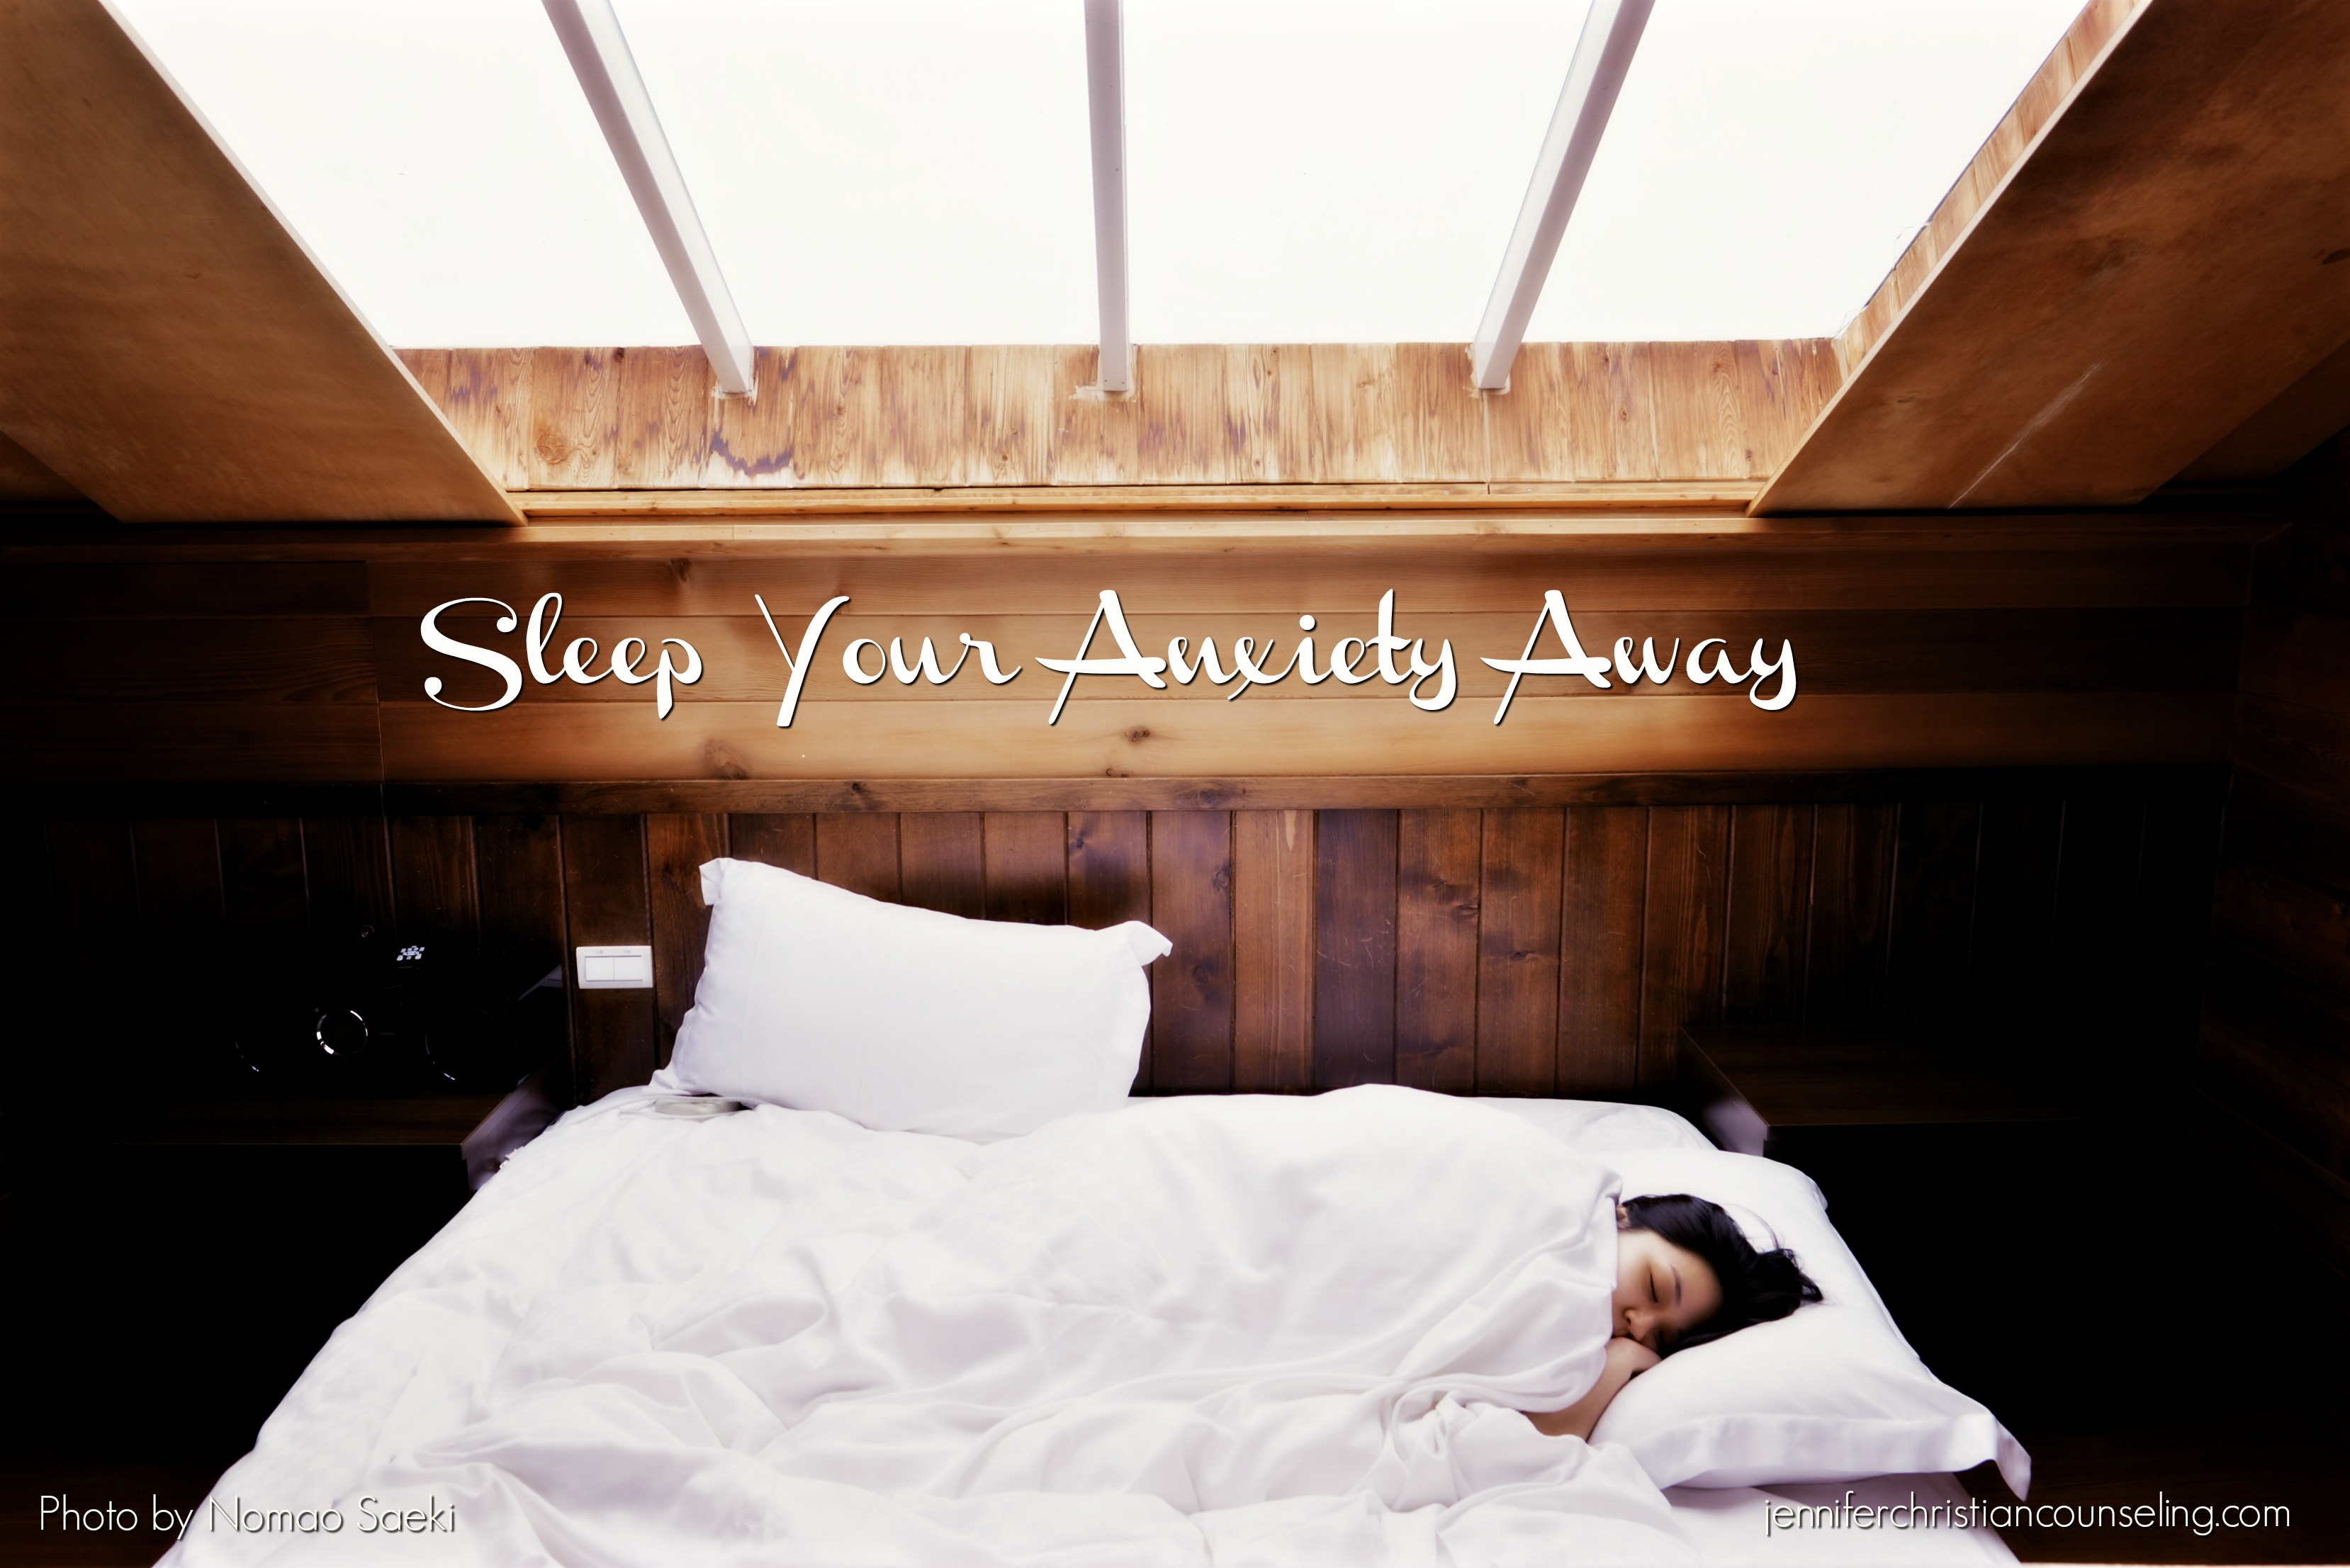 Sleep Your Anxiety Away